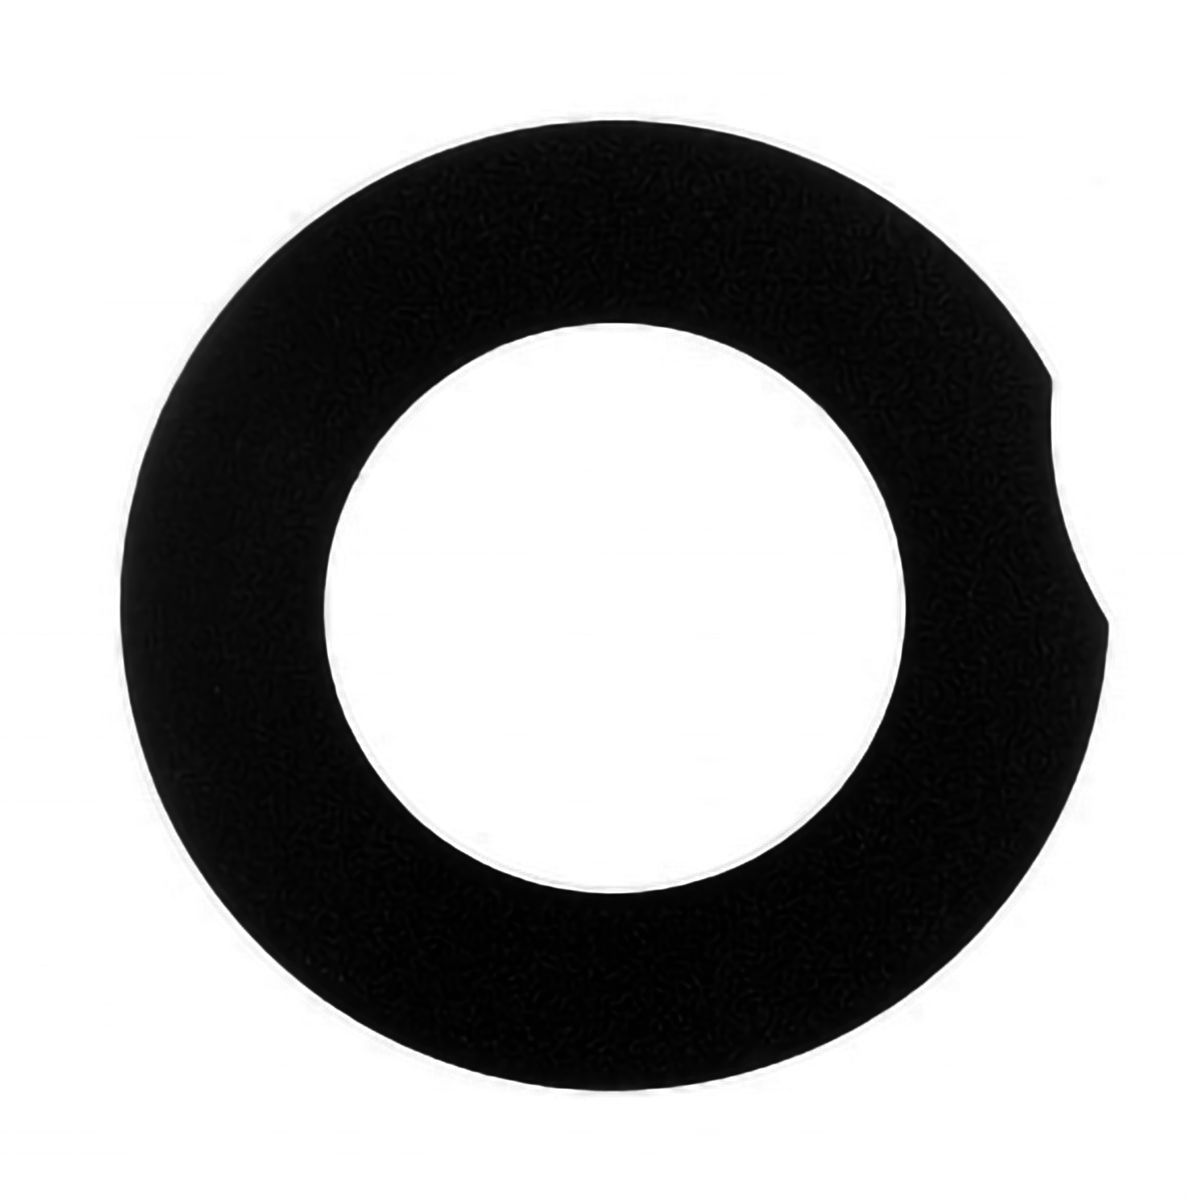 Active/Performance cover ring for design cover, right